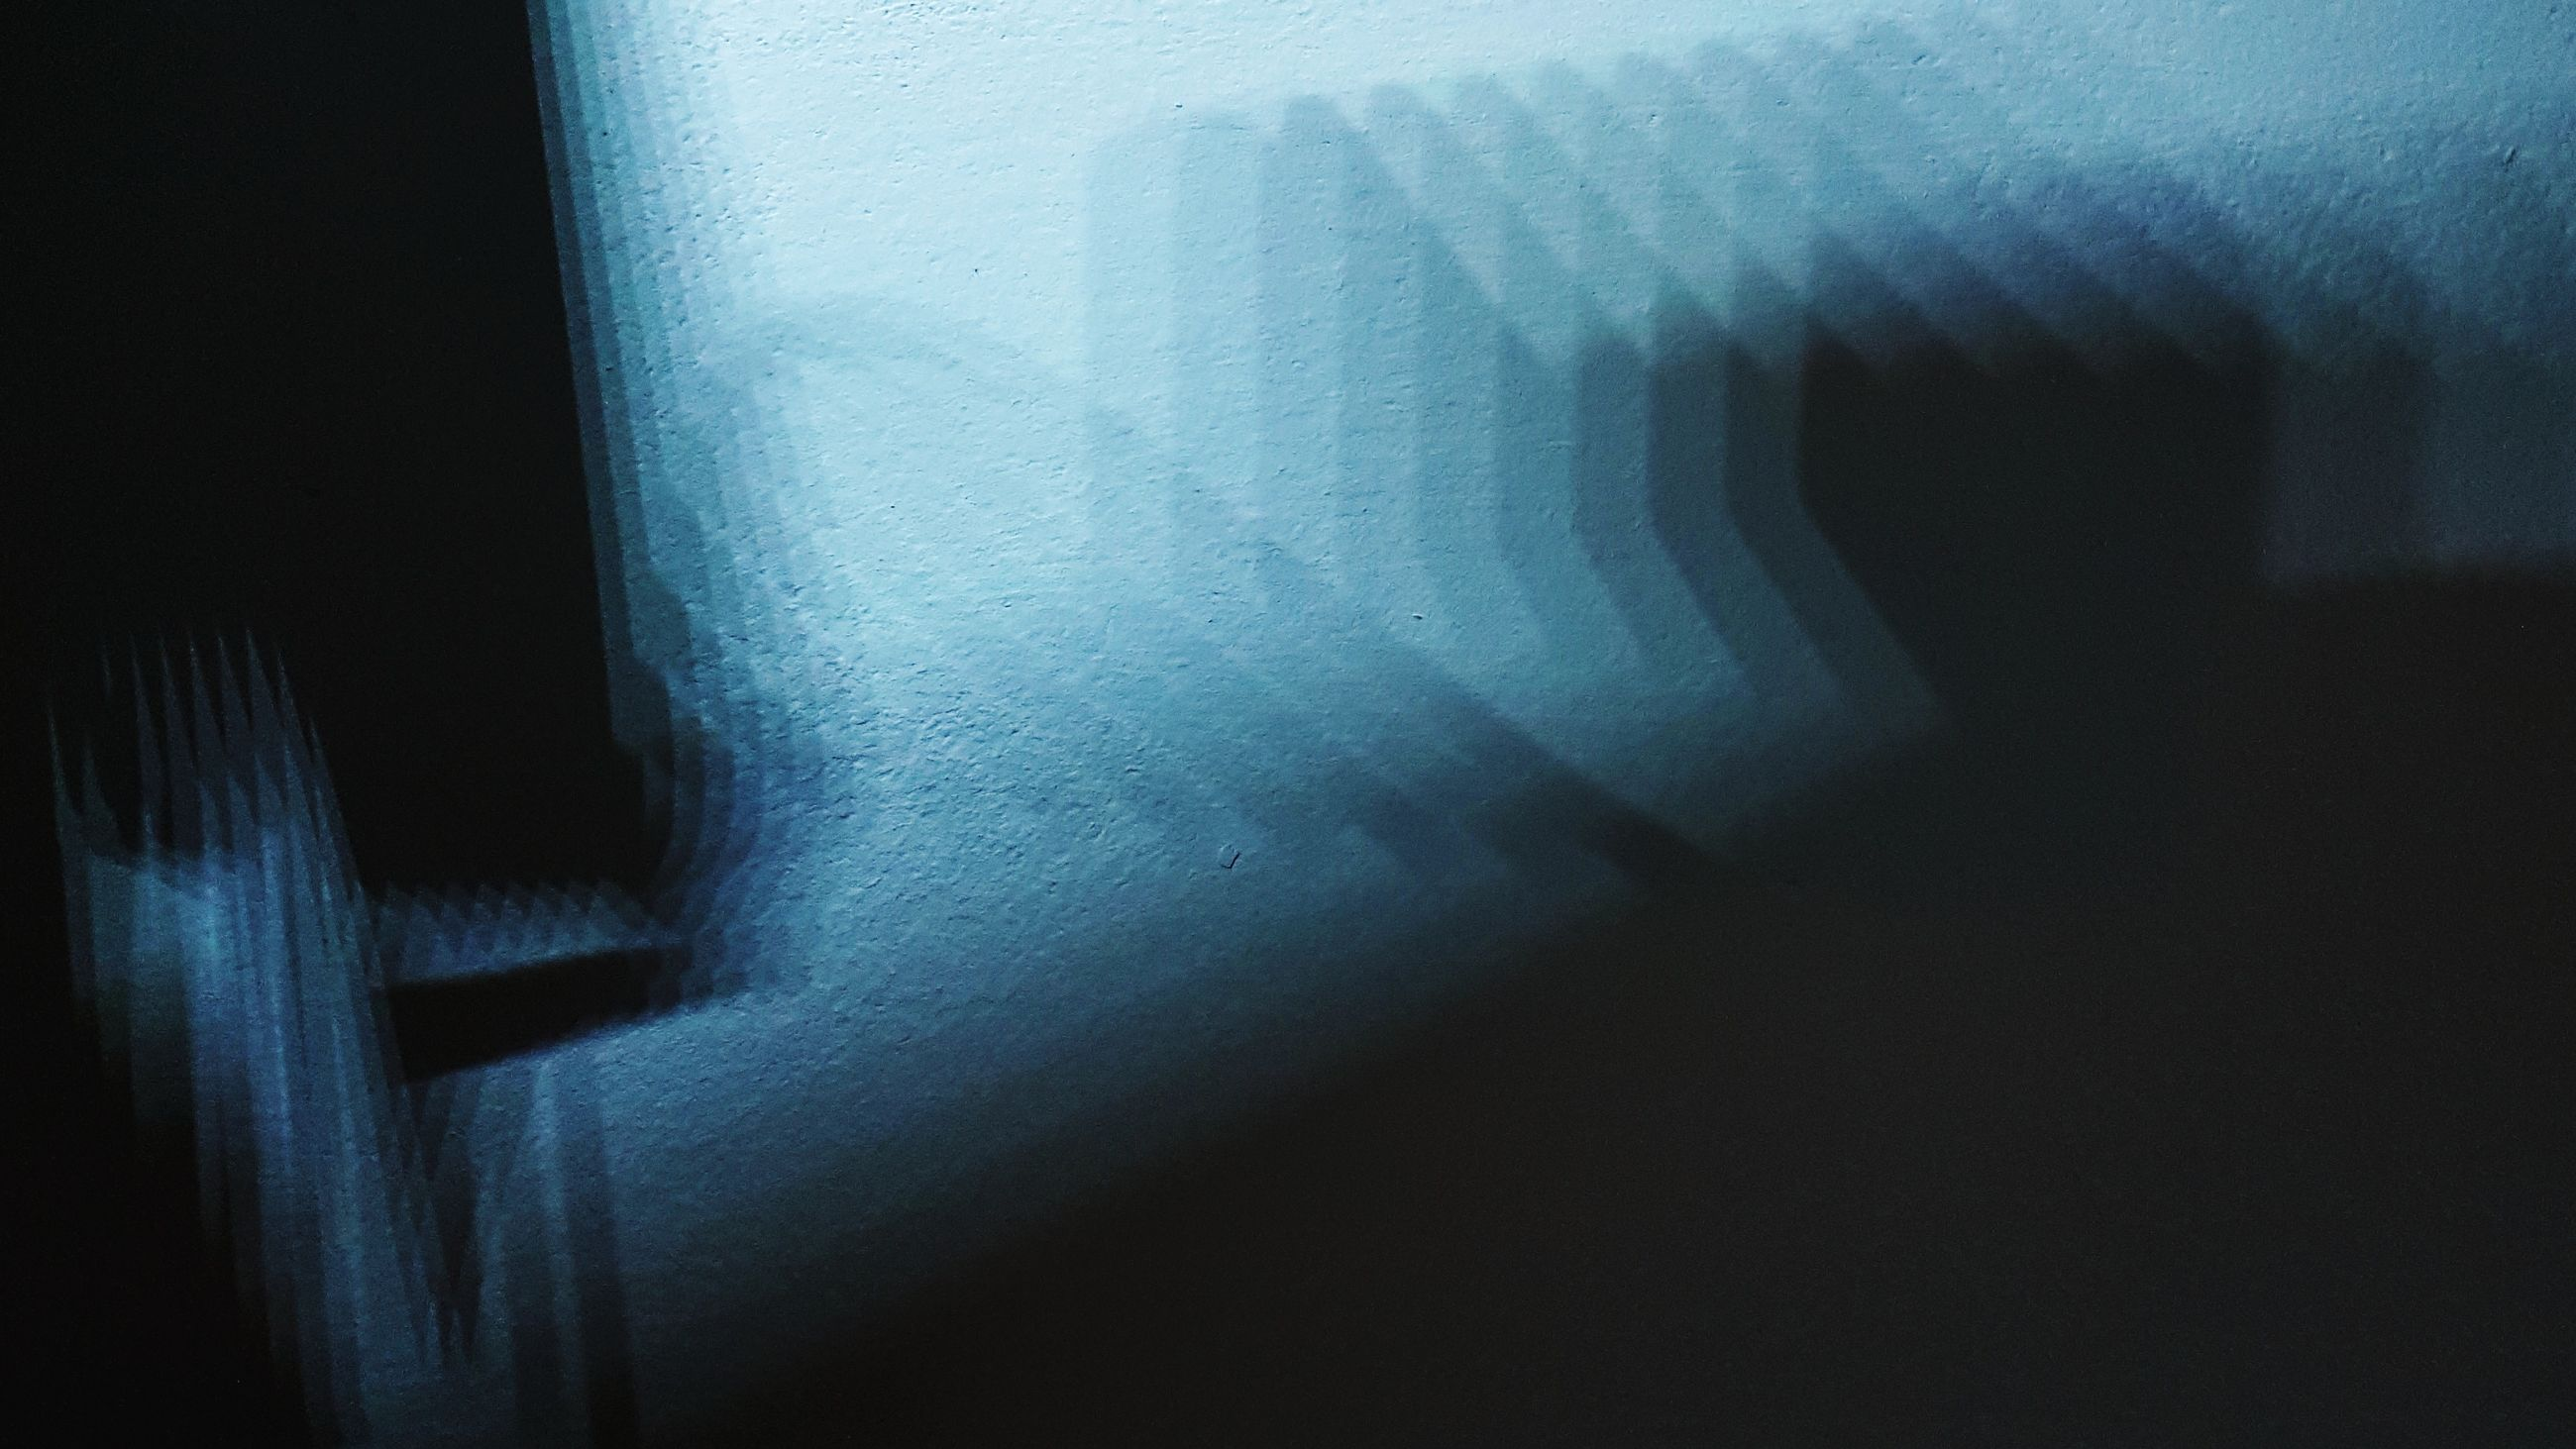 close-up, indoors, blue, no people, drapes, curtain, window, backgrounds, day